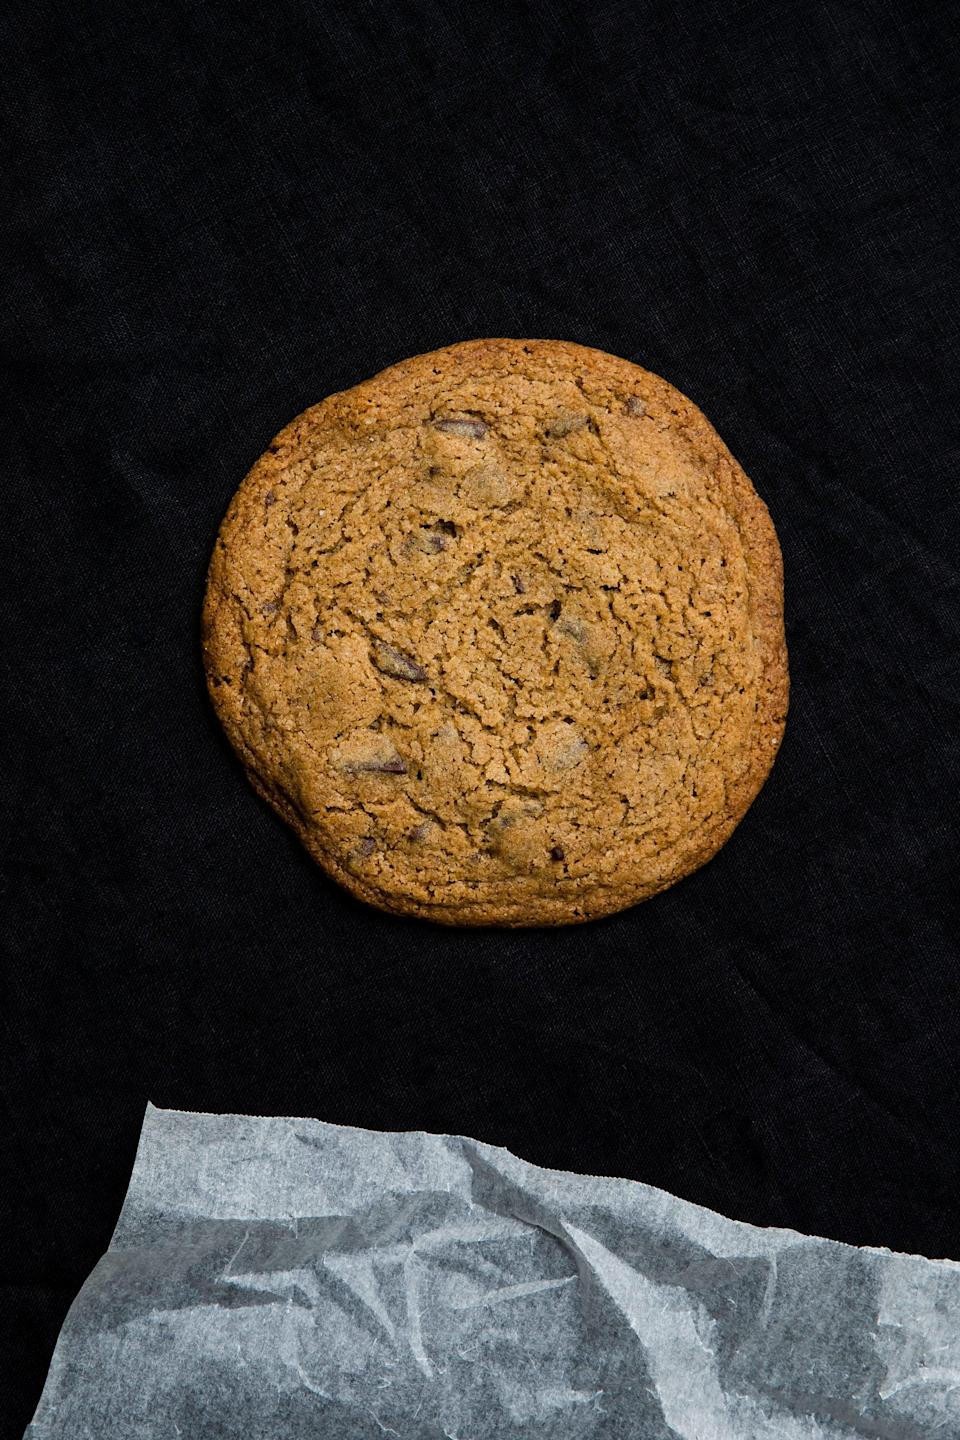 <strong>El's rum, rye and sea salt cookies</strong><br><em>Makes 12</em><br><br><strong>Ingredients</strong><br>210 g vegan butter<br>190 g brown sugar<br>1 tsp vanilla paste or extract<br>1½ tbsp rum<br>1 tsp No Egg<br>1 tbsp cold water<br>70 g rye flour<br>200 g plain flour<br>½ tsp ground cinnamon<br>½ tsp bicarbonate of soda<br>100 g dark chocolate, chopped into chunks<br>salt flakes, for sprinkling<br><br><strong>Instructions</strong><br>1. Preheat the oven to 160°C (320°F) and line a large baking tray with baking paper. Place the butter and sugar in the bowl of an electric mixer fitted with the paddle attachment and beat until pale. Beat in the vanilla.<br><br>2. In a separate bowl, combine the rum, No Egg and water, then add to the butter mixture.<br><br>3. Mix together the flours, cinnamon and bicarbonate of soda, then add to the butter mixture and mix until combined. Gently fold in the chocolate chunks.<br><br>4. Roll the dough into 12 even-sized balls. Place them on the prepared tray, allowing room for spreading, and gently press to flatten.<br><br>5. Sprinkle a pinch of salt flakes on each cookie and bake for 8–10 minutes. Cool completely on the tray before removing.